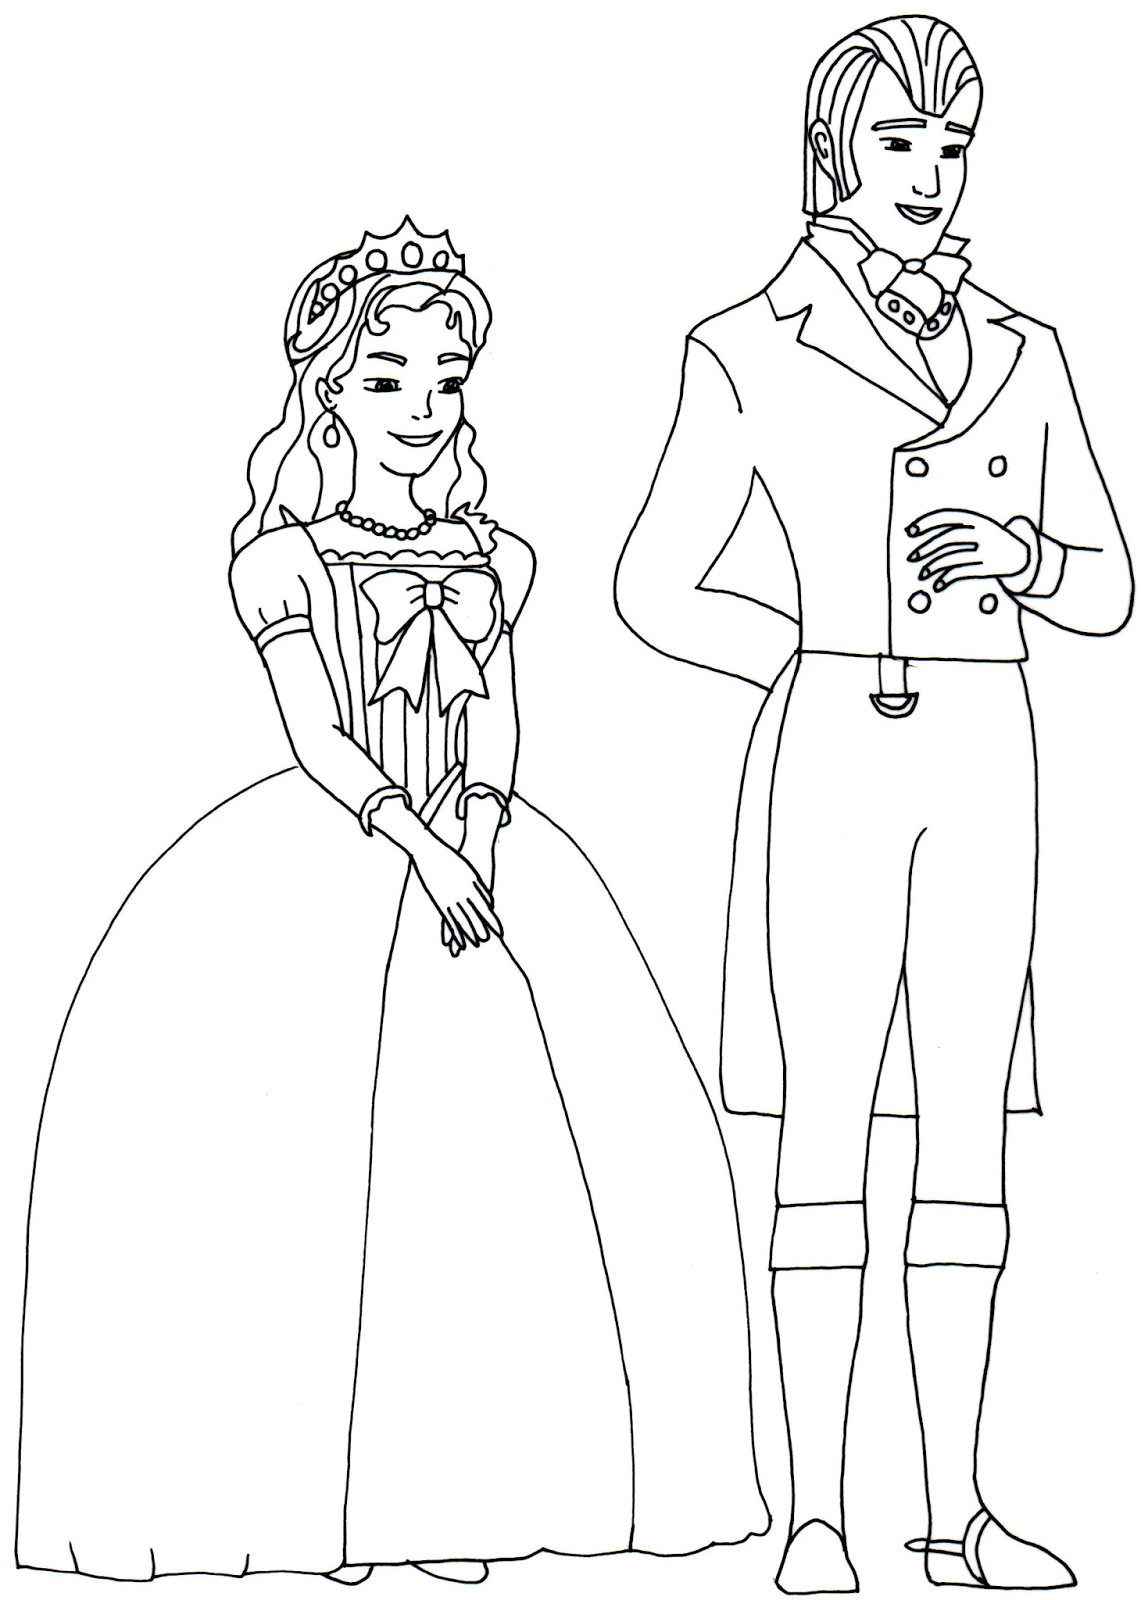 King And Queen Sofia The First Coloring Page Coloring For Kids